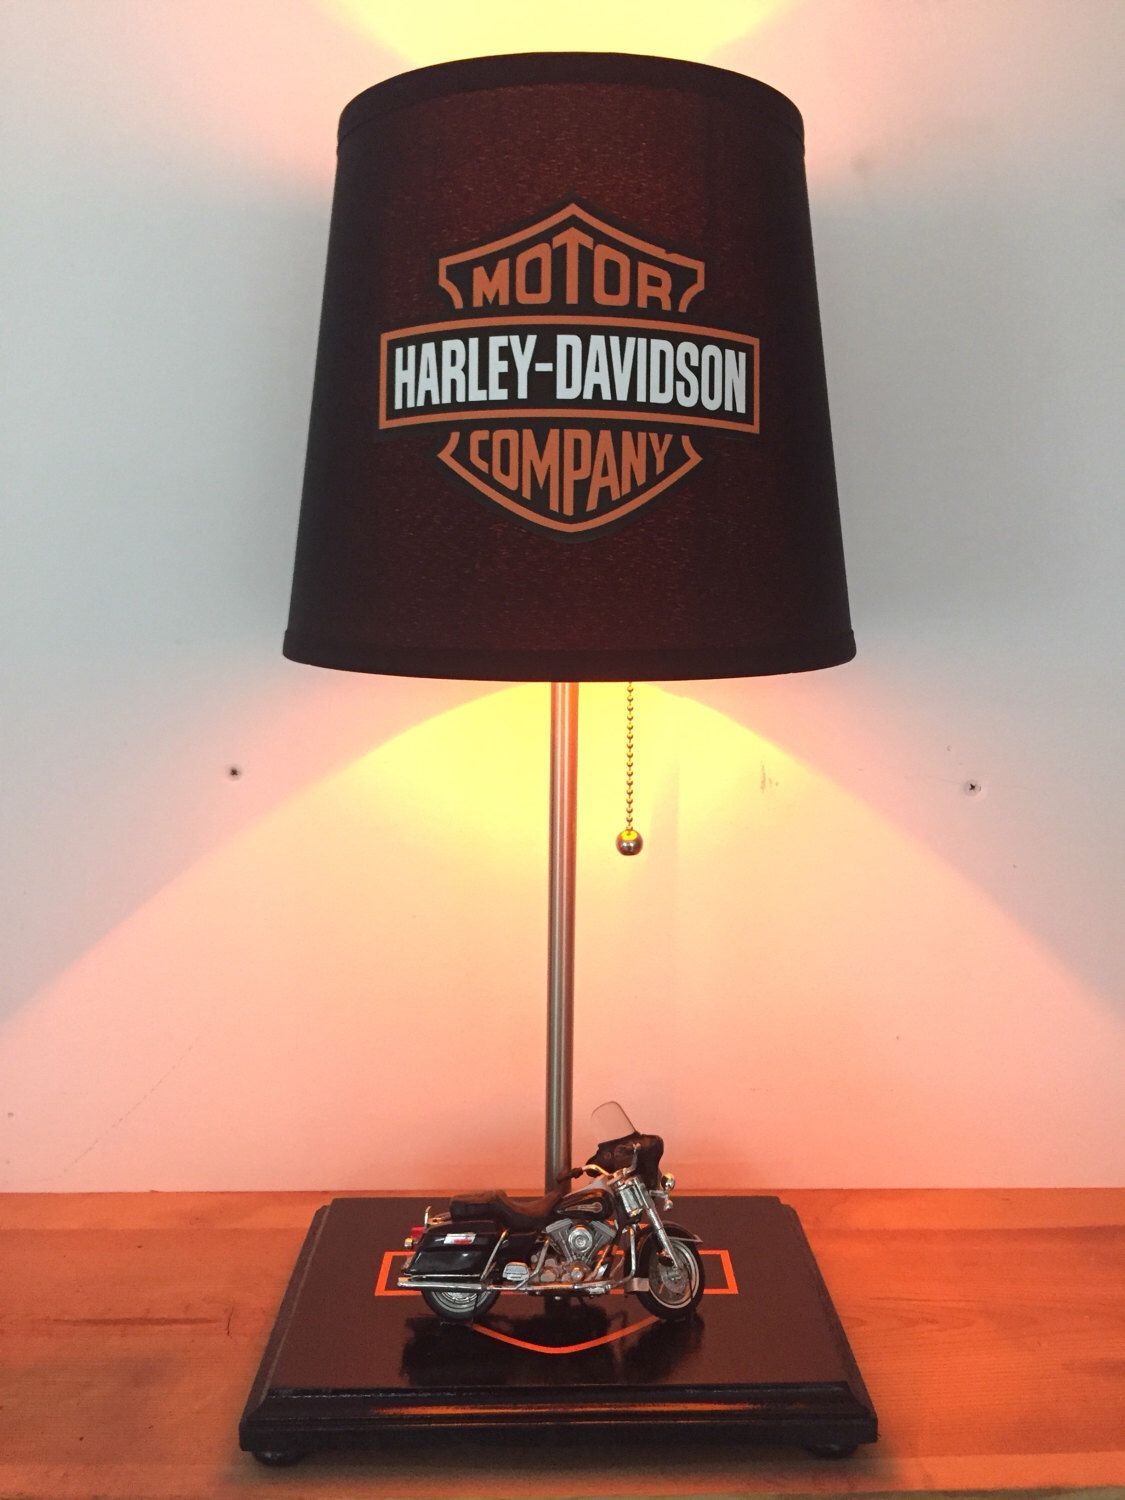 Harley Davidson Motorcycle Lamp, Biker Light, Table Lamp, Home Decor,  Harley